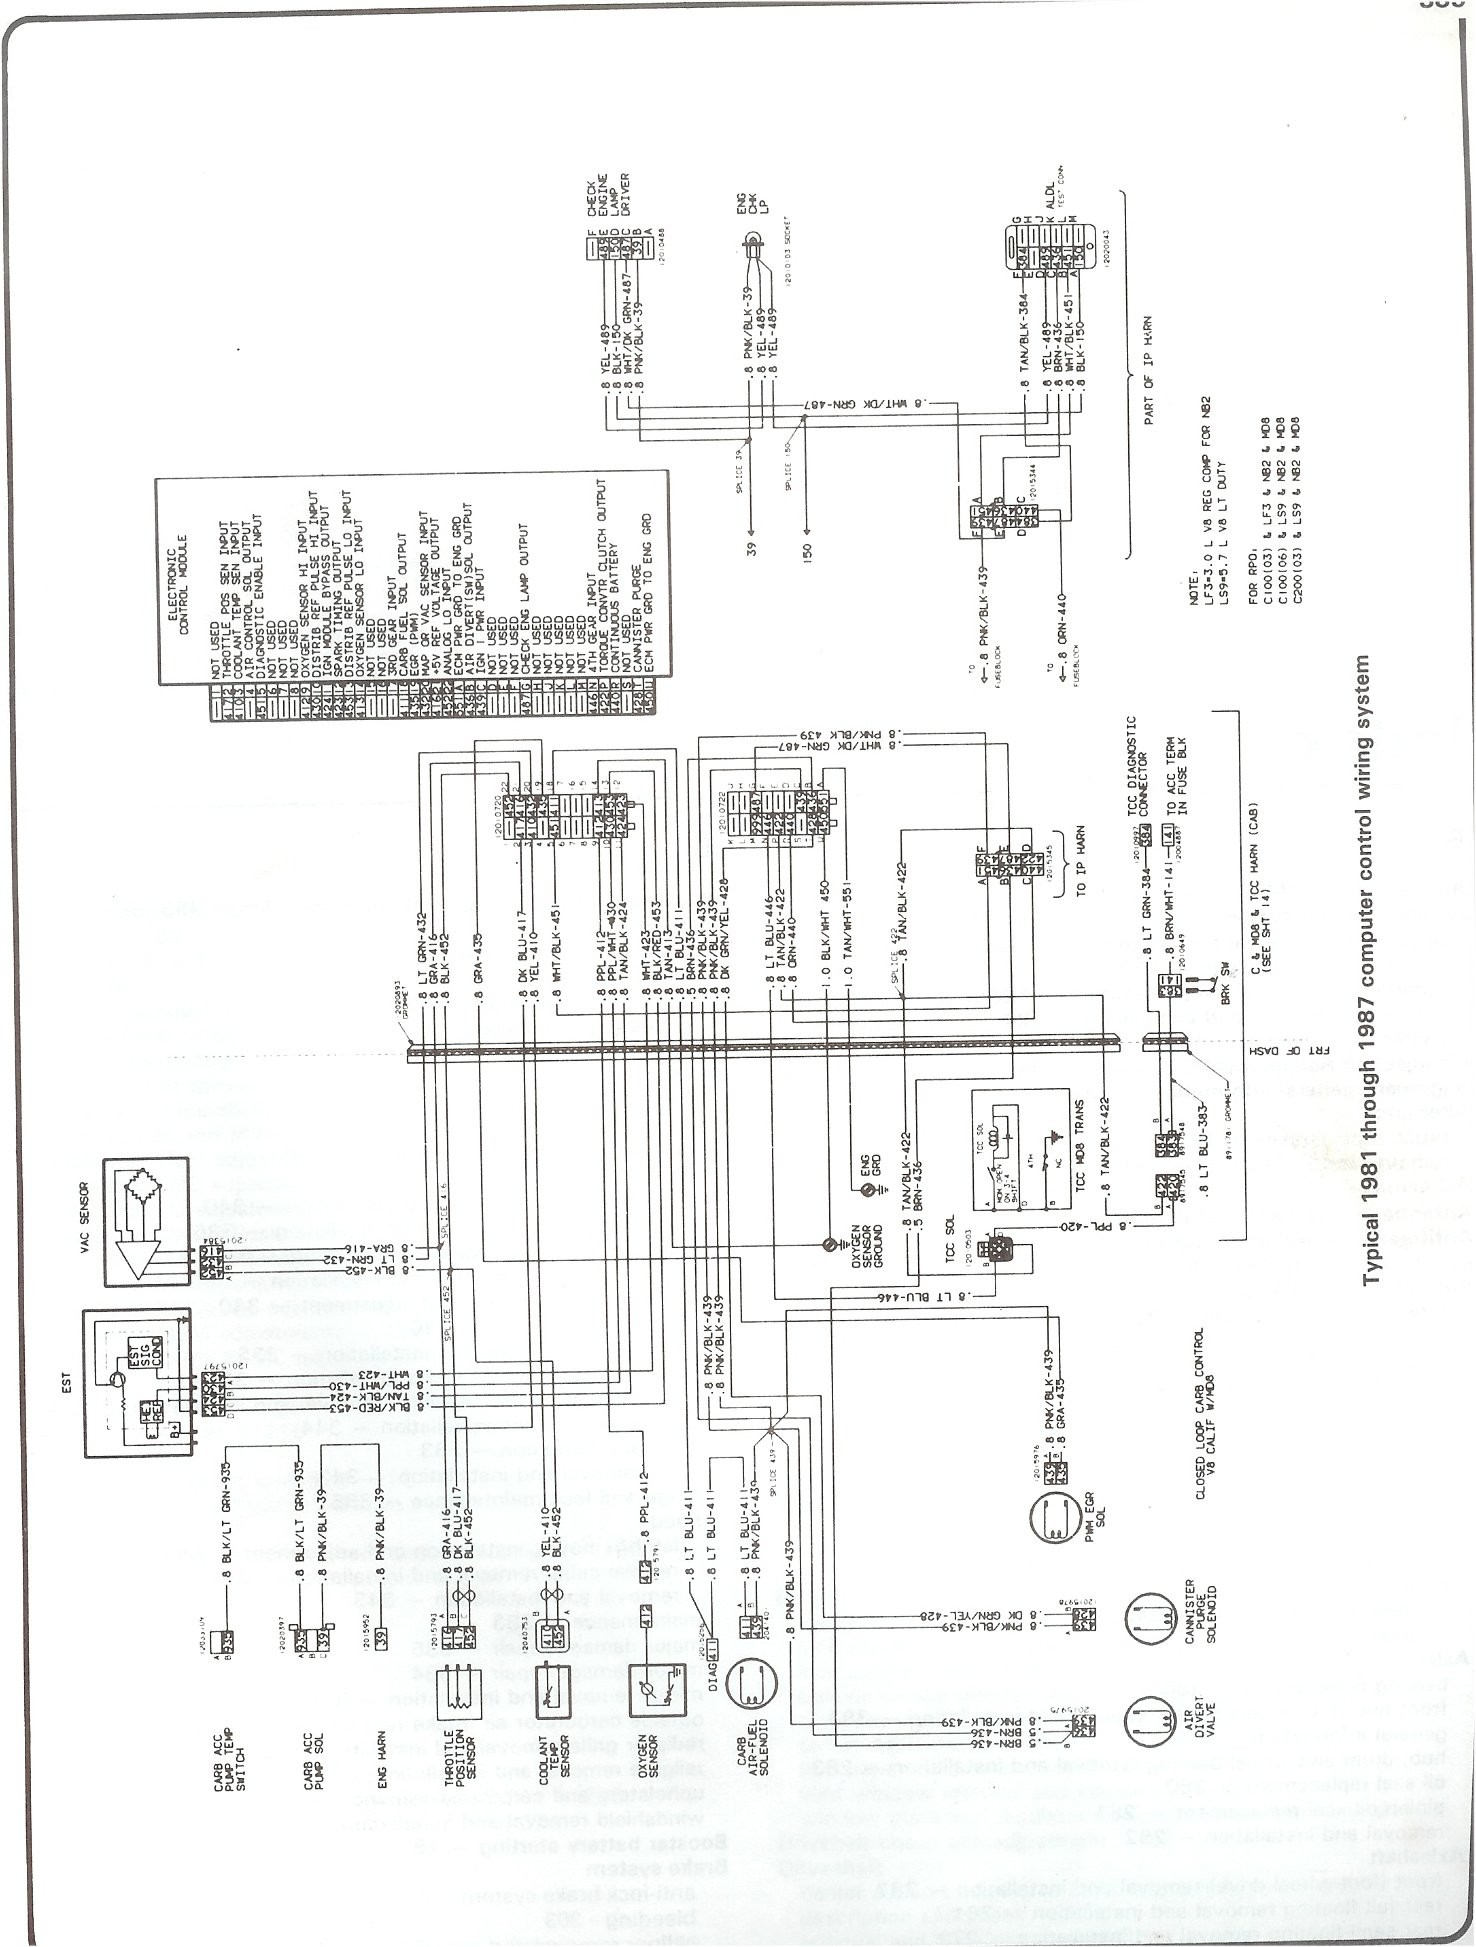 1986 Mitsubishi Wiring Diagram Library Dodge Ram Fuse Box Chevy Truck Harness C10 1975